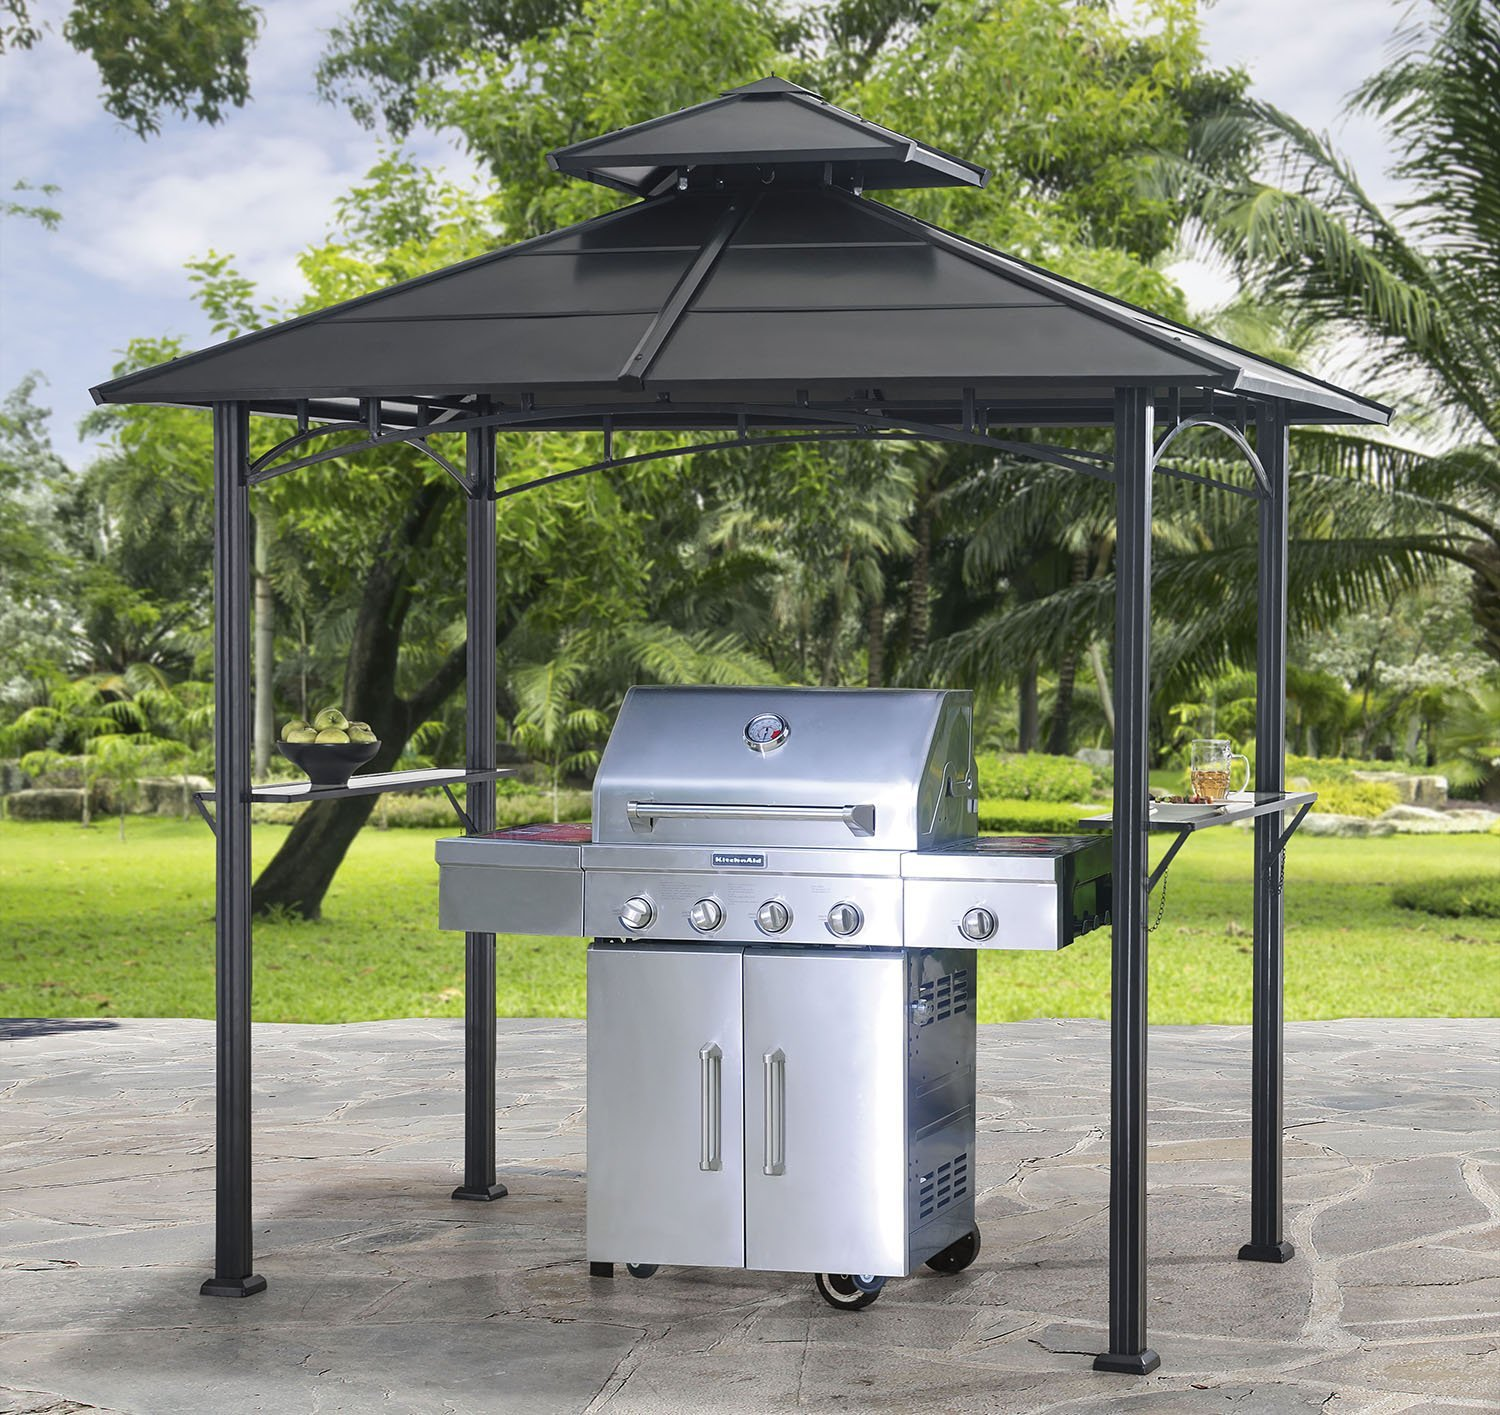 Sunjoy L-GZ238PST-10 Harper Hard Top Grill Gazebo & Our Review of the Best 7 Hardtop Gazebos